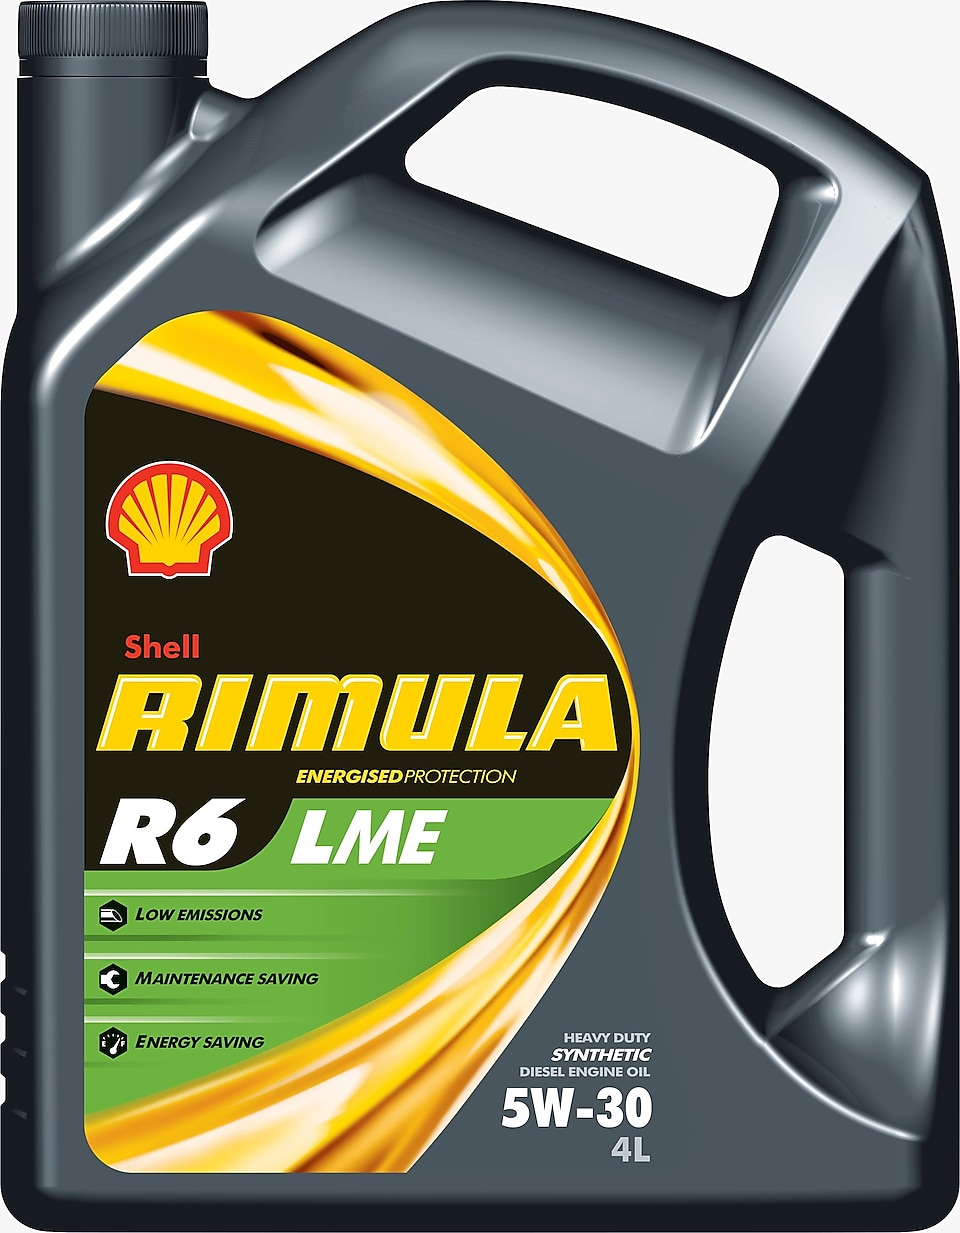 Packshot of Shell Rimula R6 LME